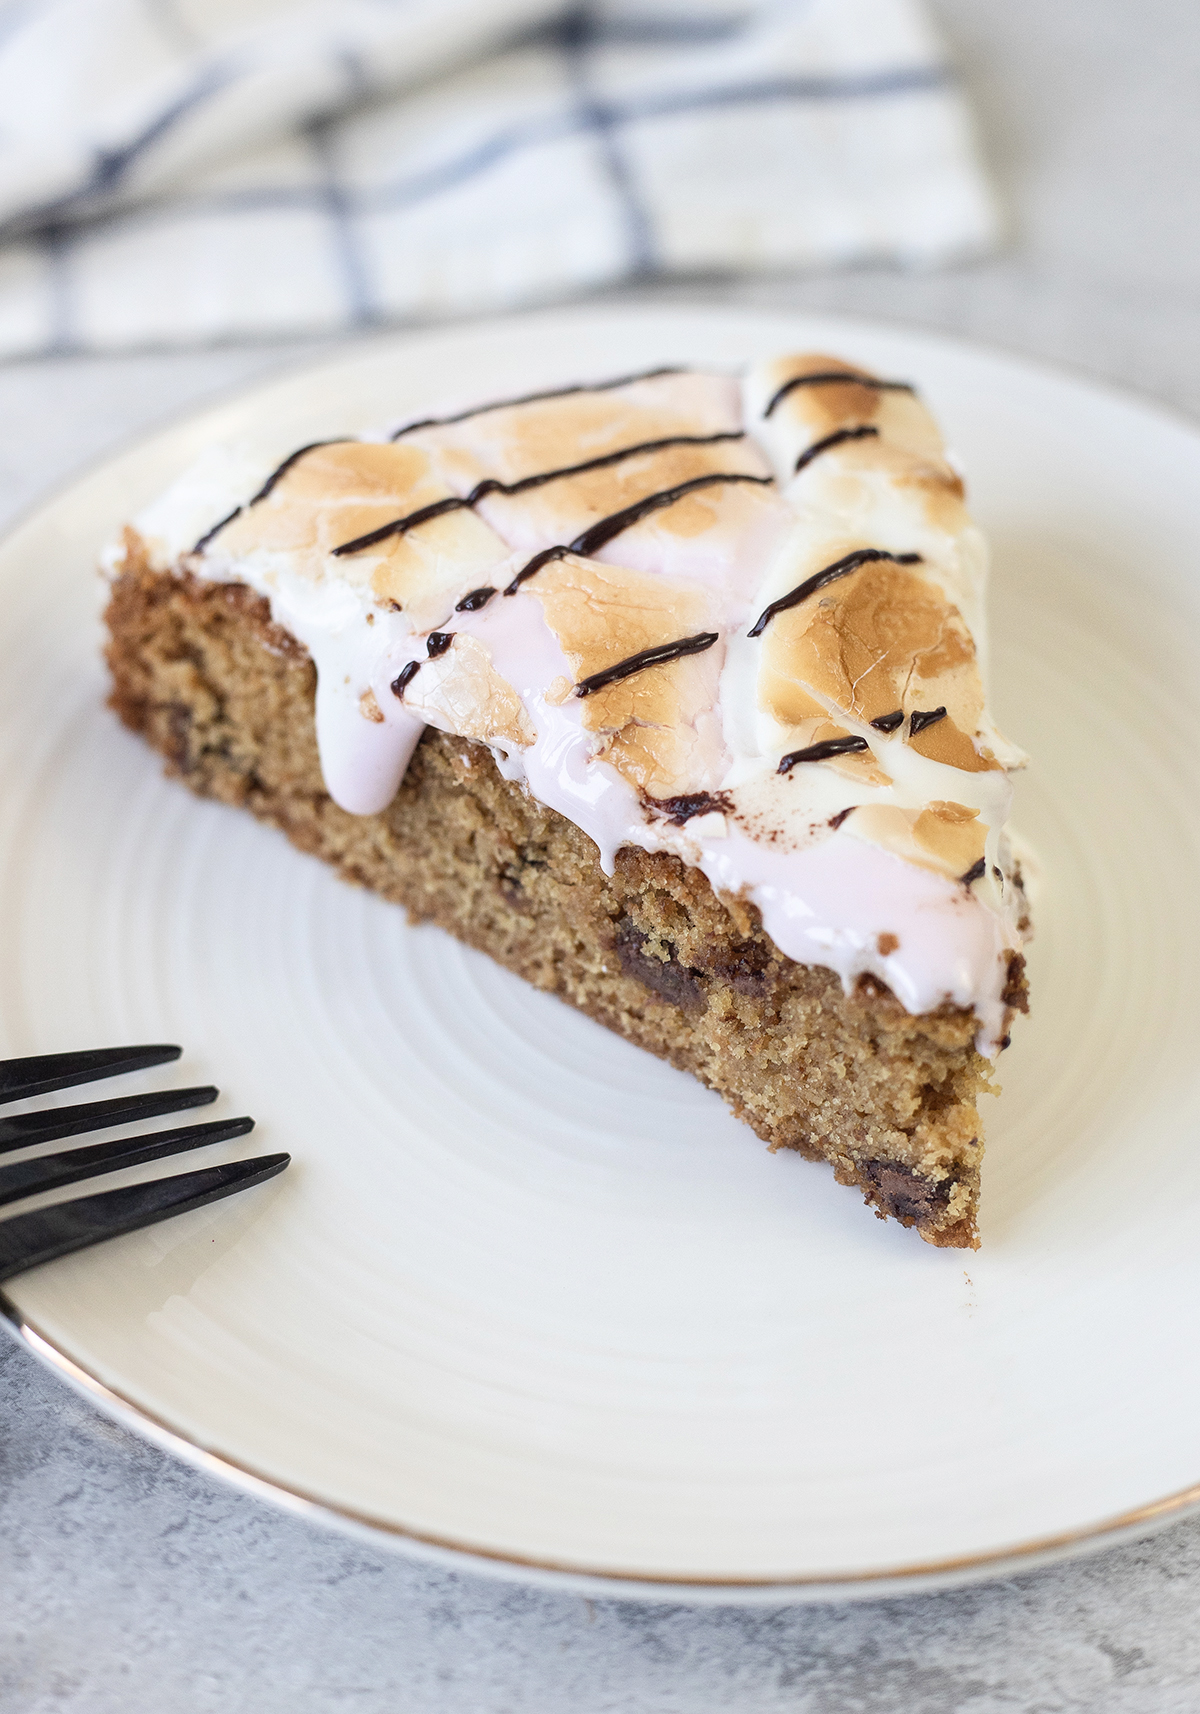 S'mores cookie pie is made with biscuit crumbs and chocolate chips and marshmallows